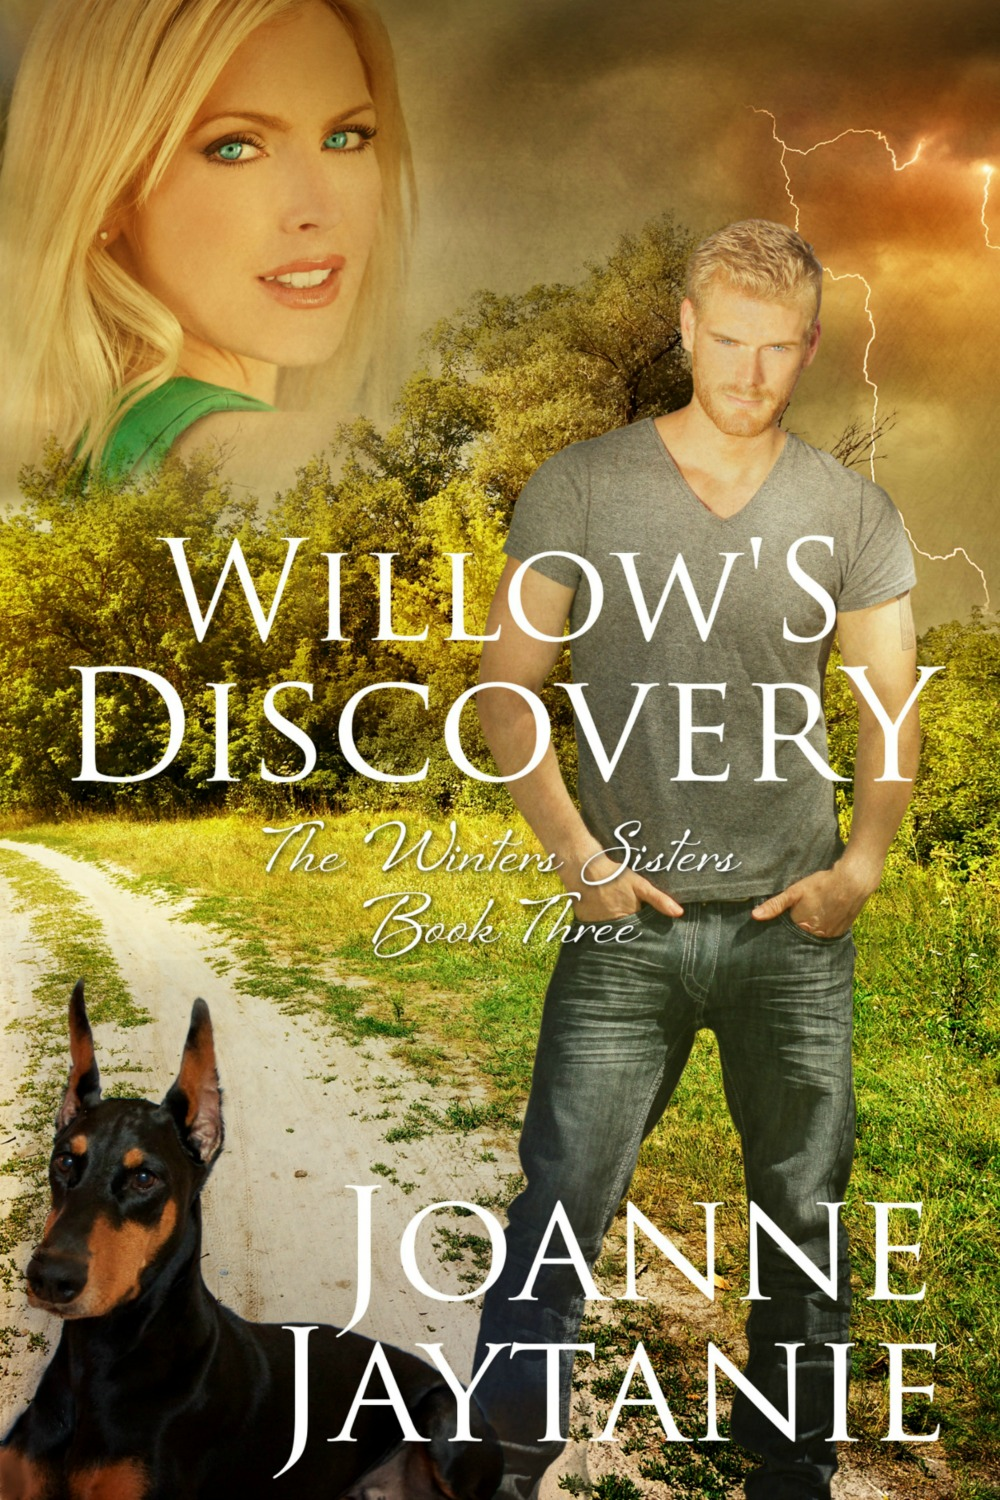 Willow's Discovery, The Winters Sisters, Book Three